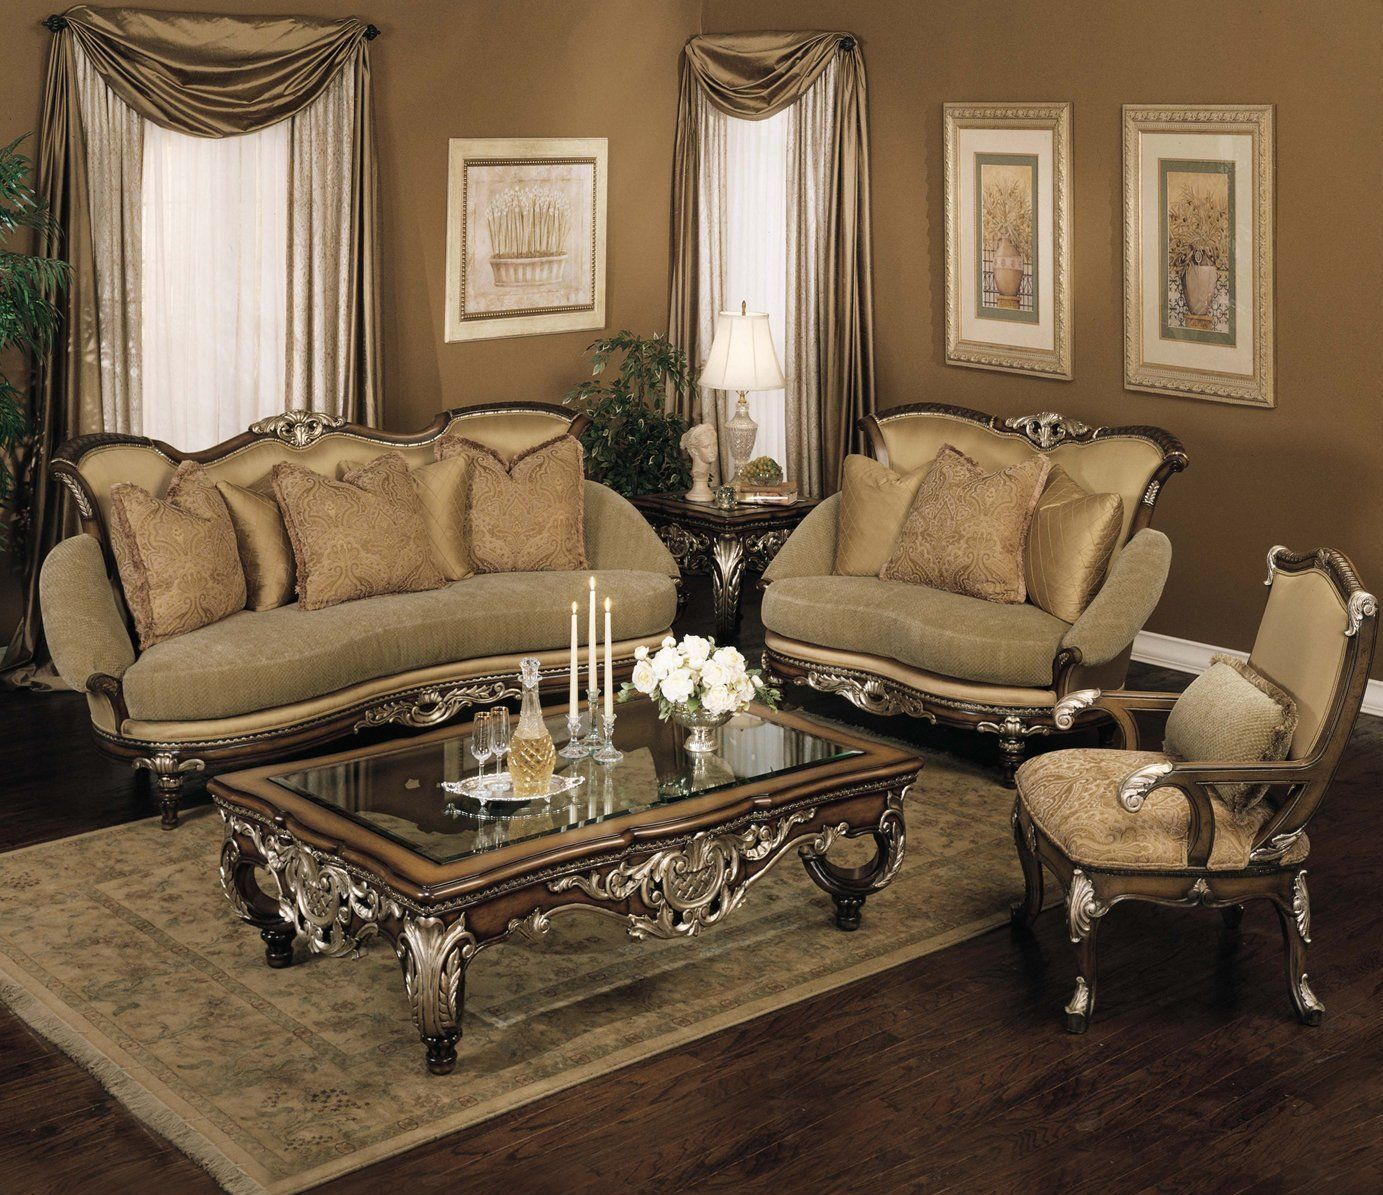 Decorating Ideas Elegant Living Rooms: Benetti's Italia, Catalon Sofa Set